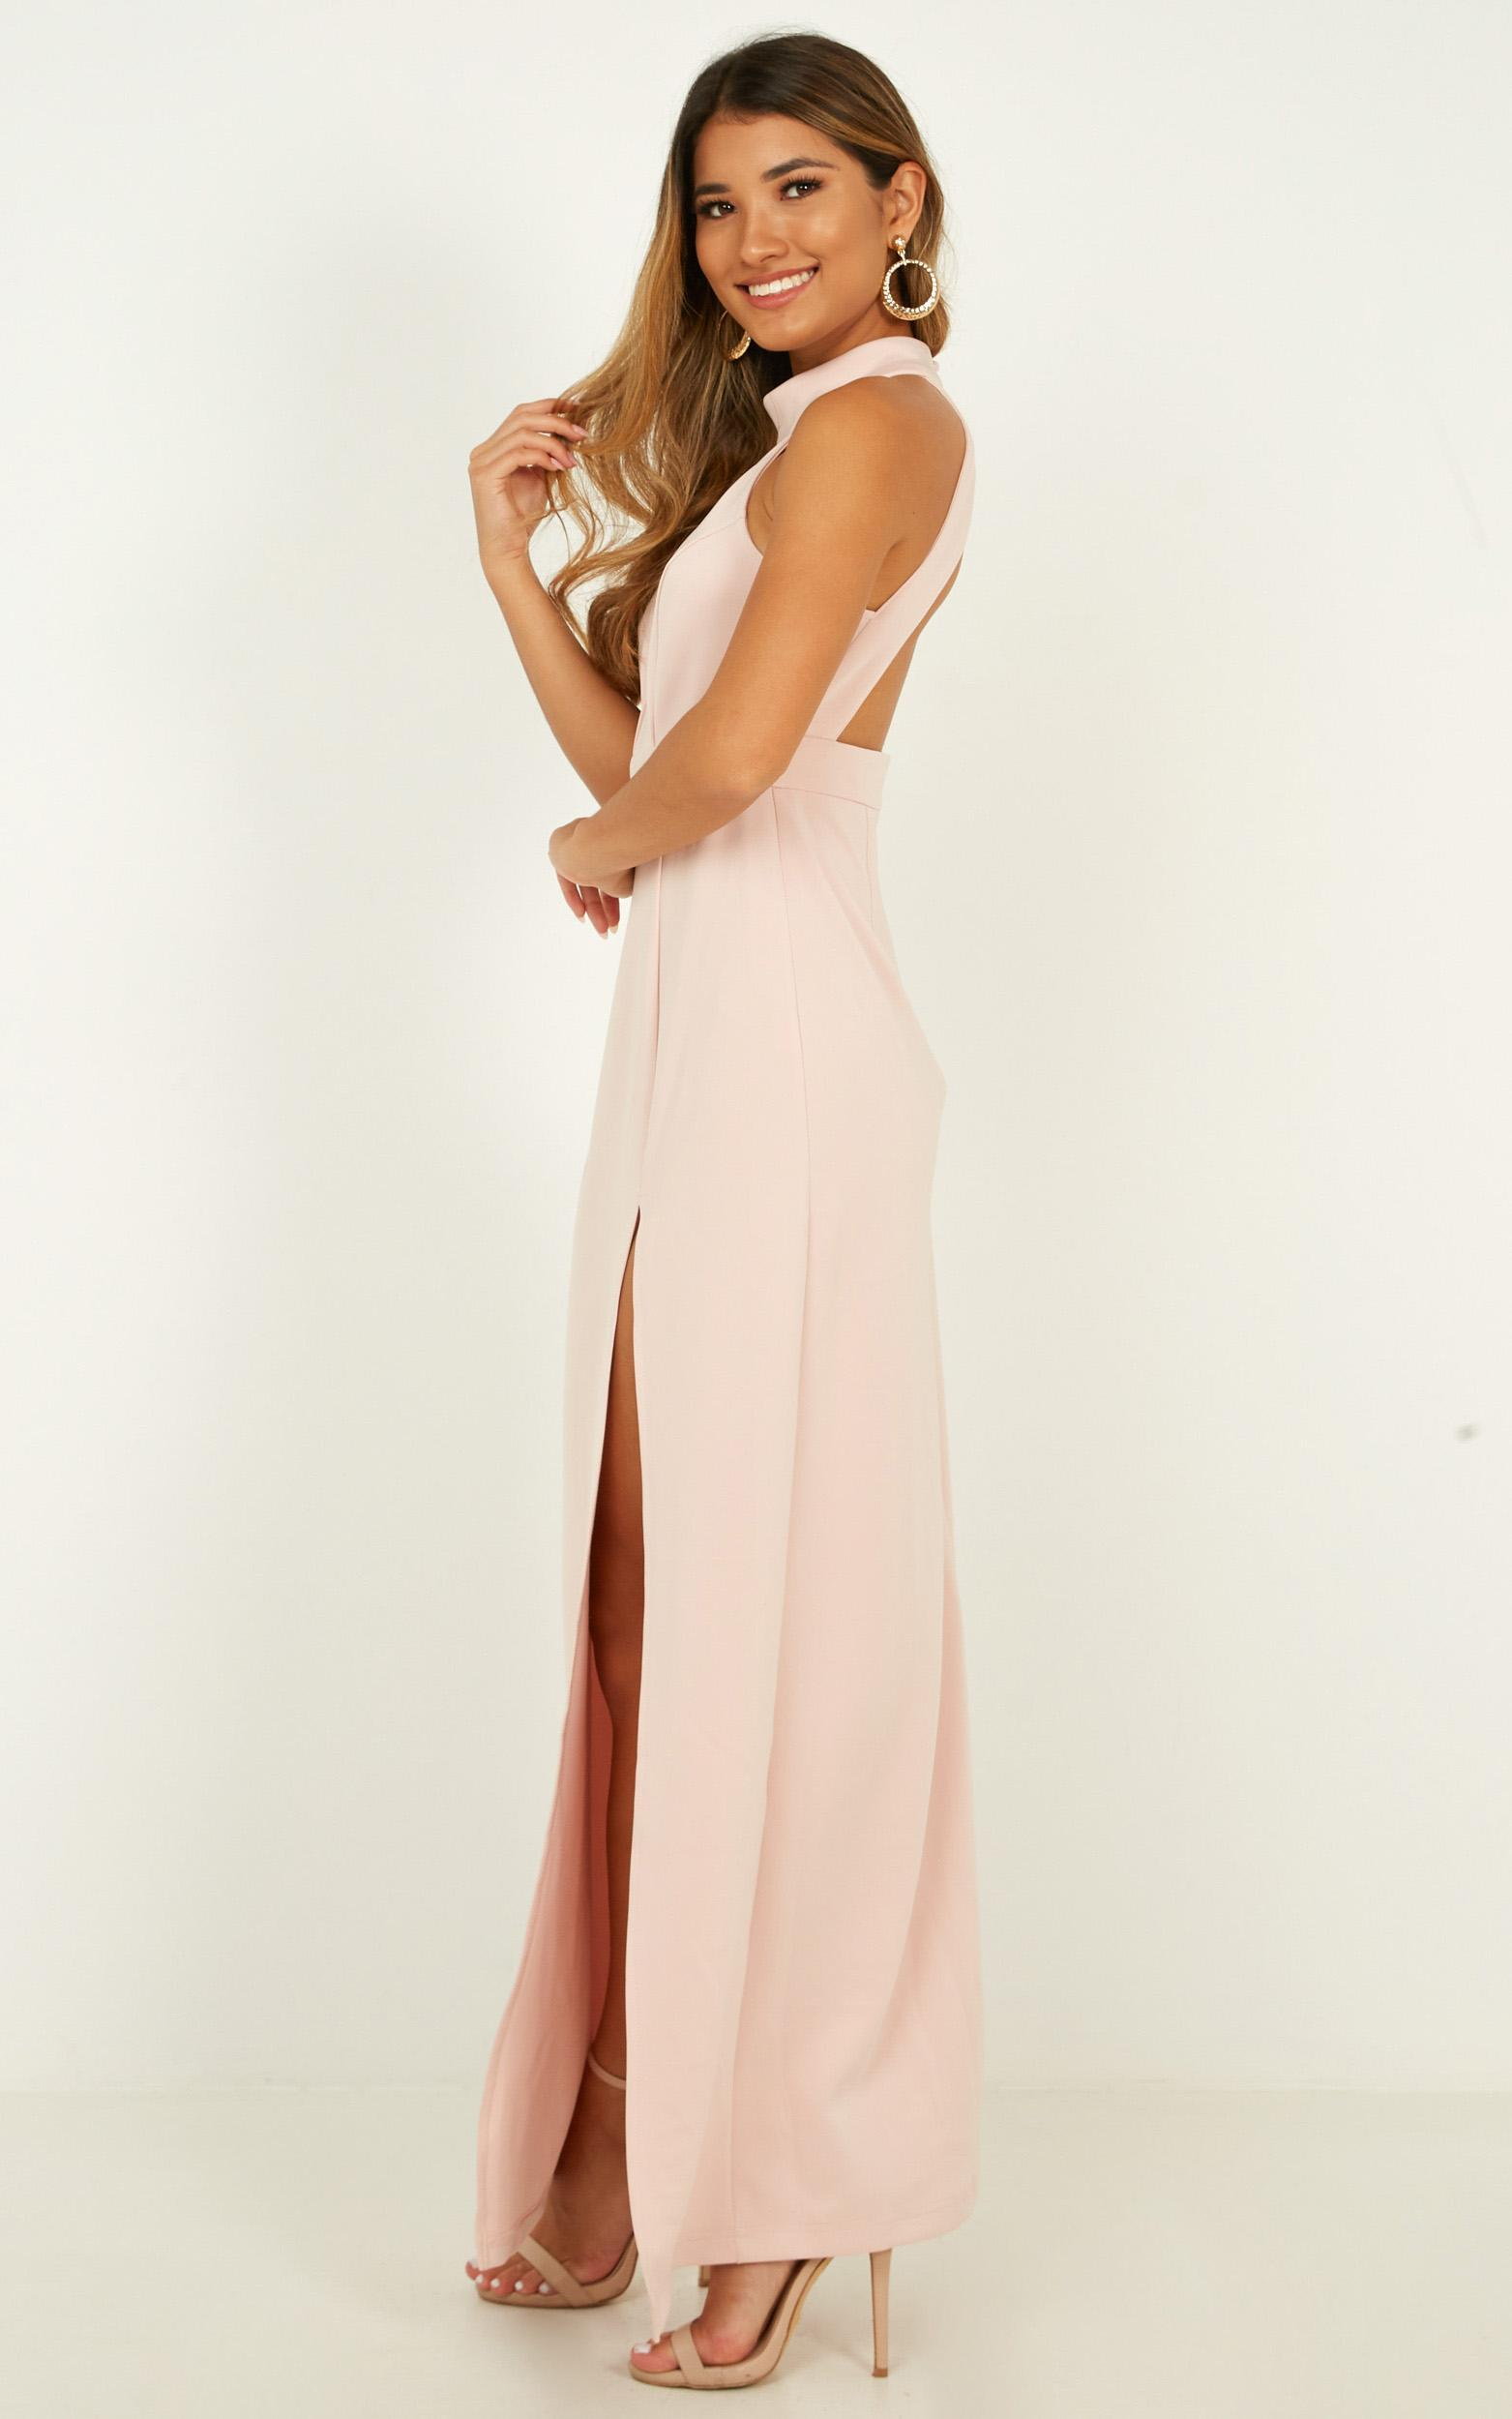 You Are Lovely Dress in blush - 20 (XXXXL), Blush, hi-res image number null